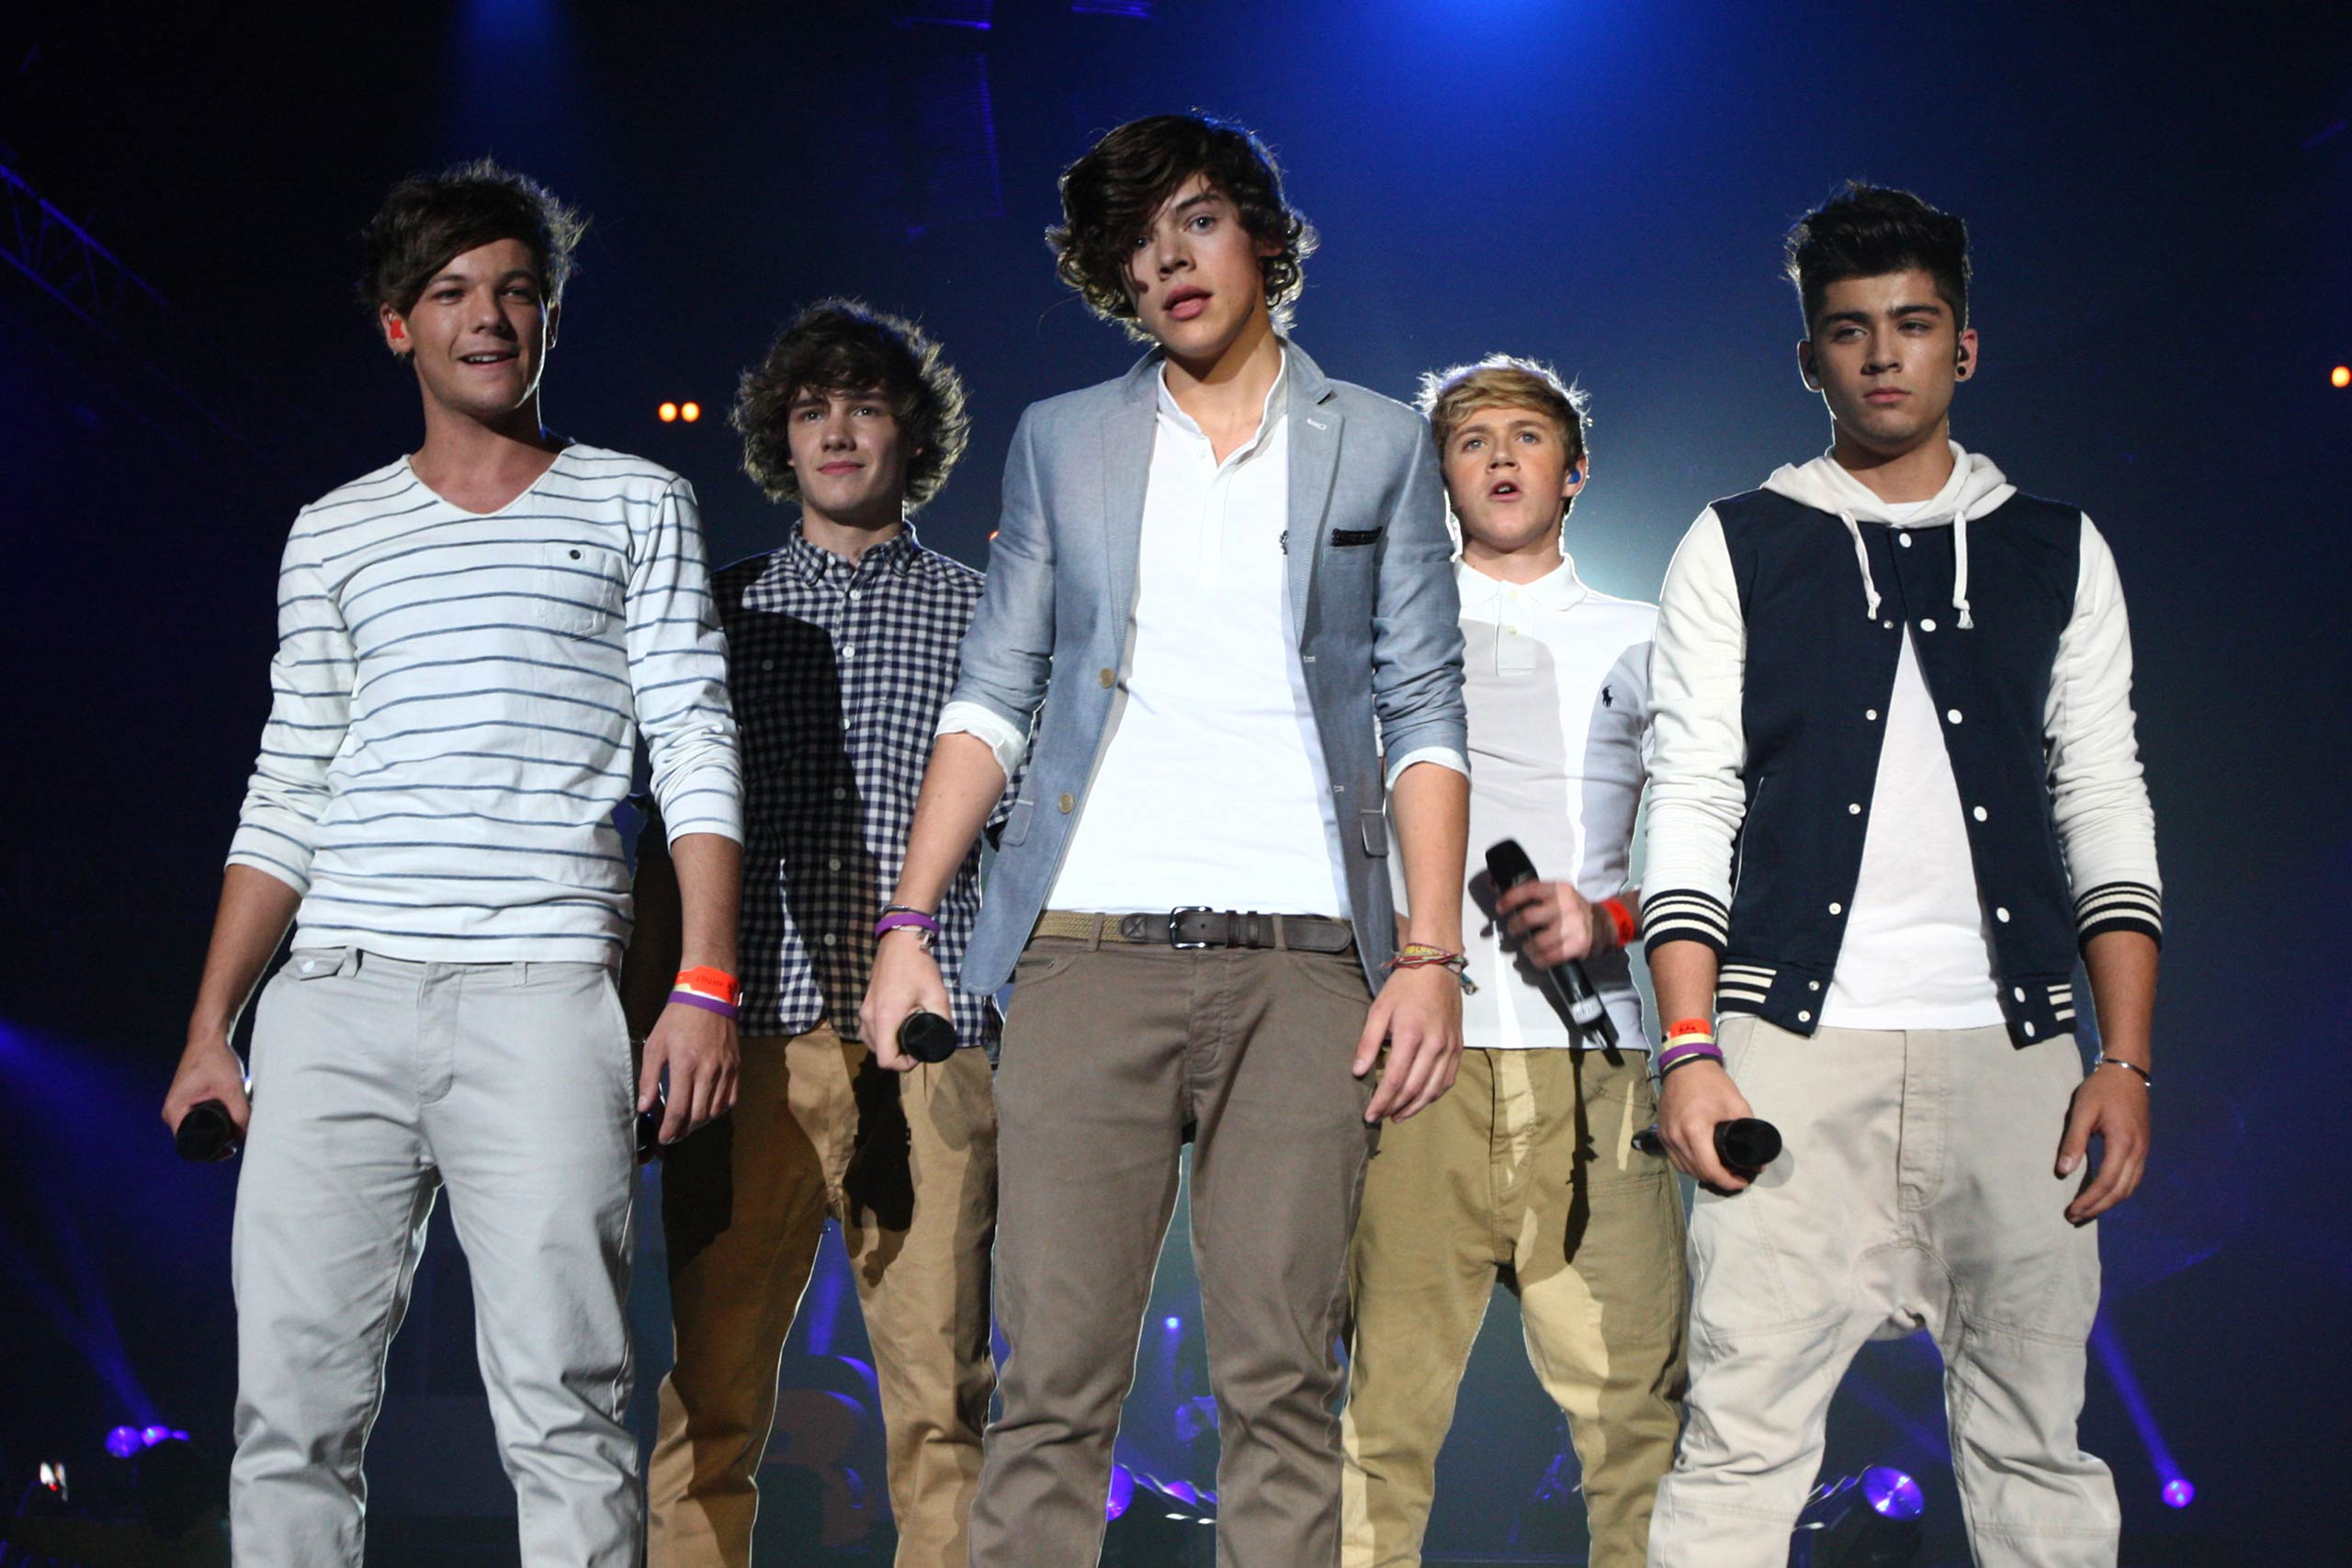 Louis Tomlinson, Liam Payne, Harry Styles, Niall Horan and Zain Malik of One Direction perform at the BBC Teen Awards at Wembley arena in London, England in 2011.